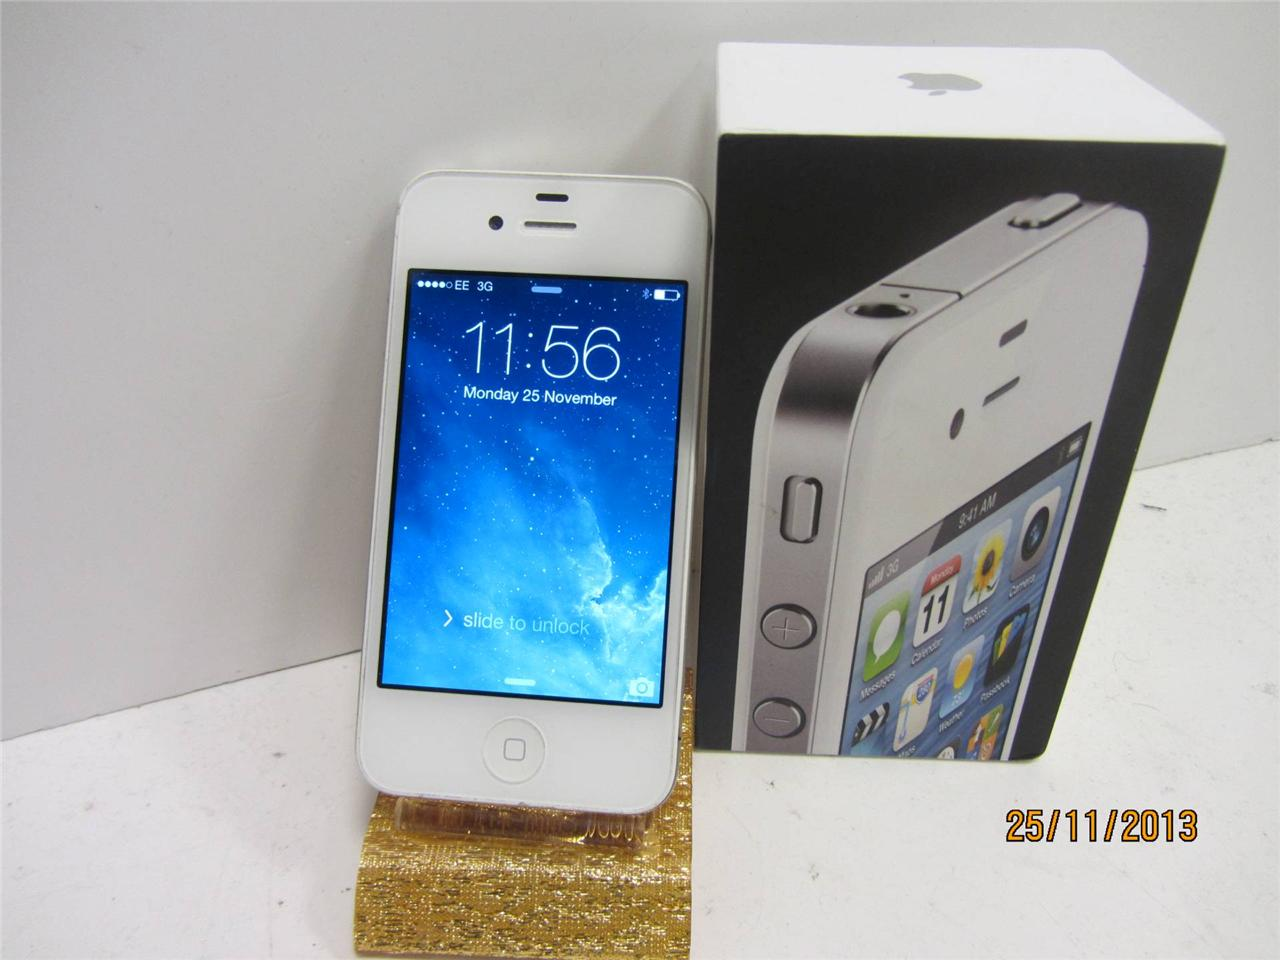 APPLE-MD198B-A-A1332-iPHONE-4-8GB-SMARTPHONE-WHITE-EE-NETWORK